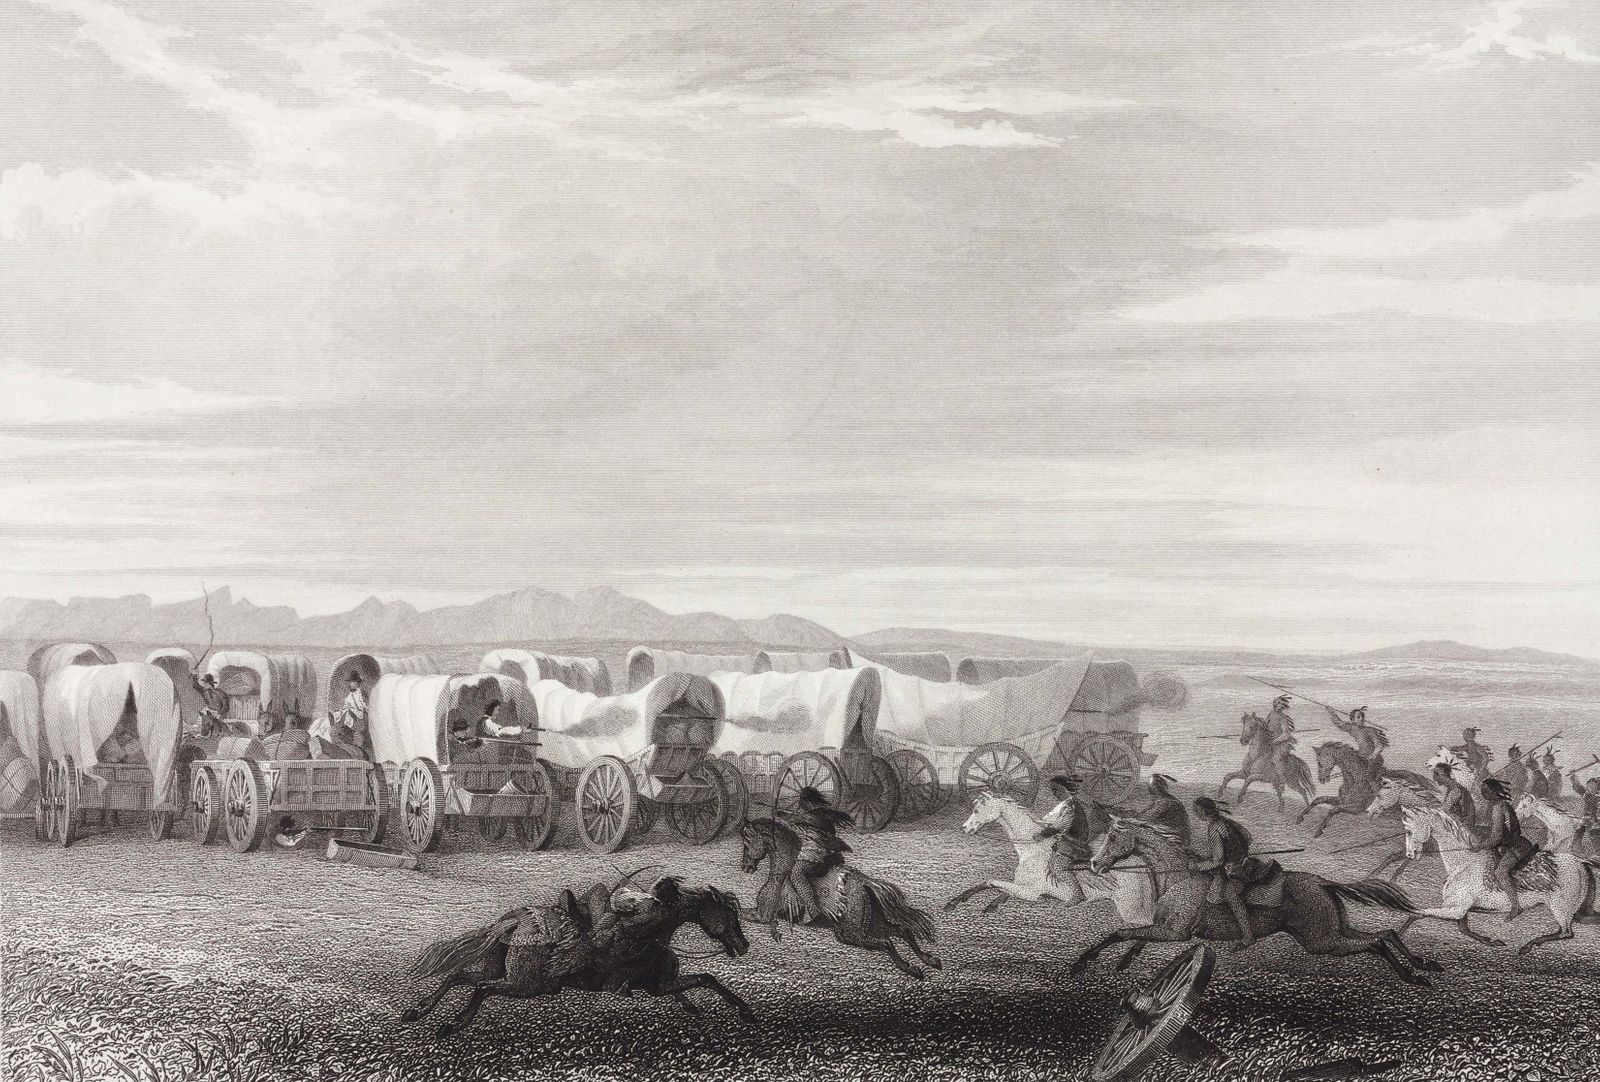 �Emigrants Attacked by the Comanches�, North America, 1847.